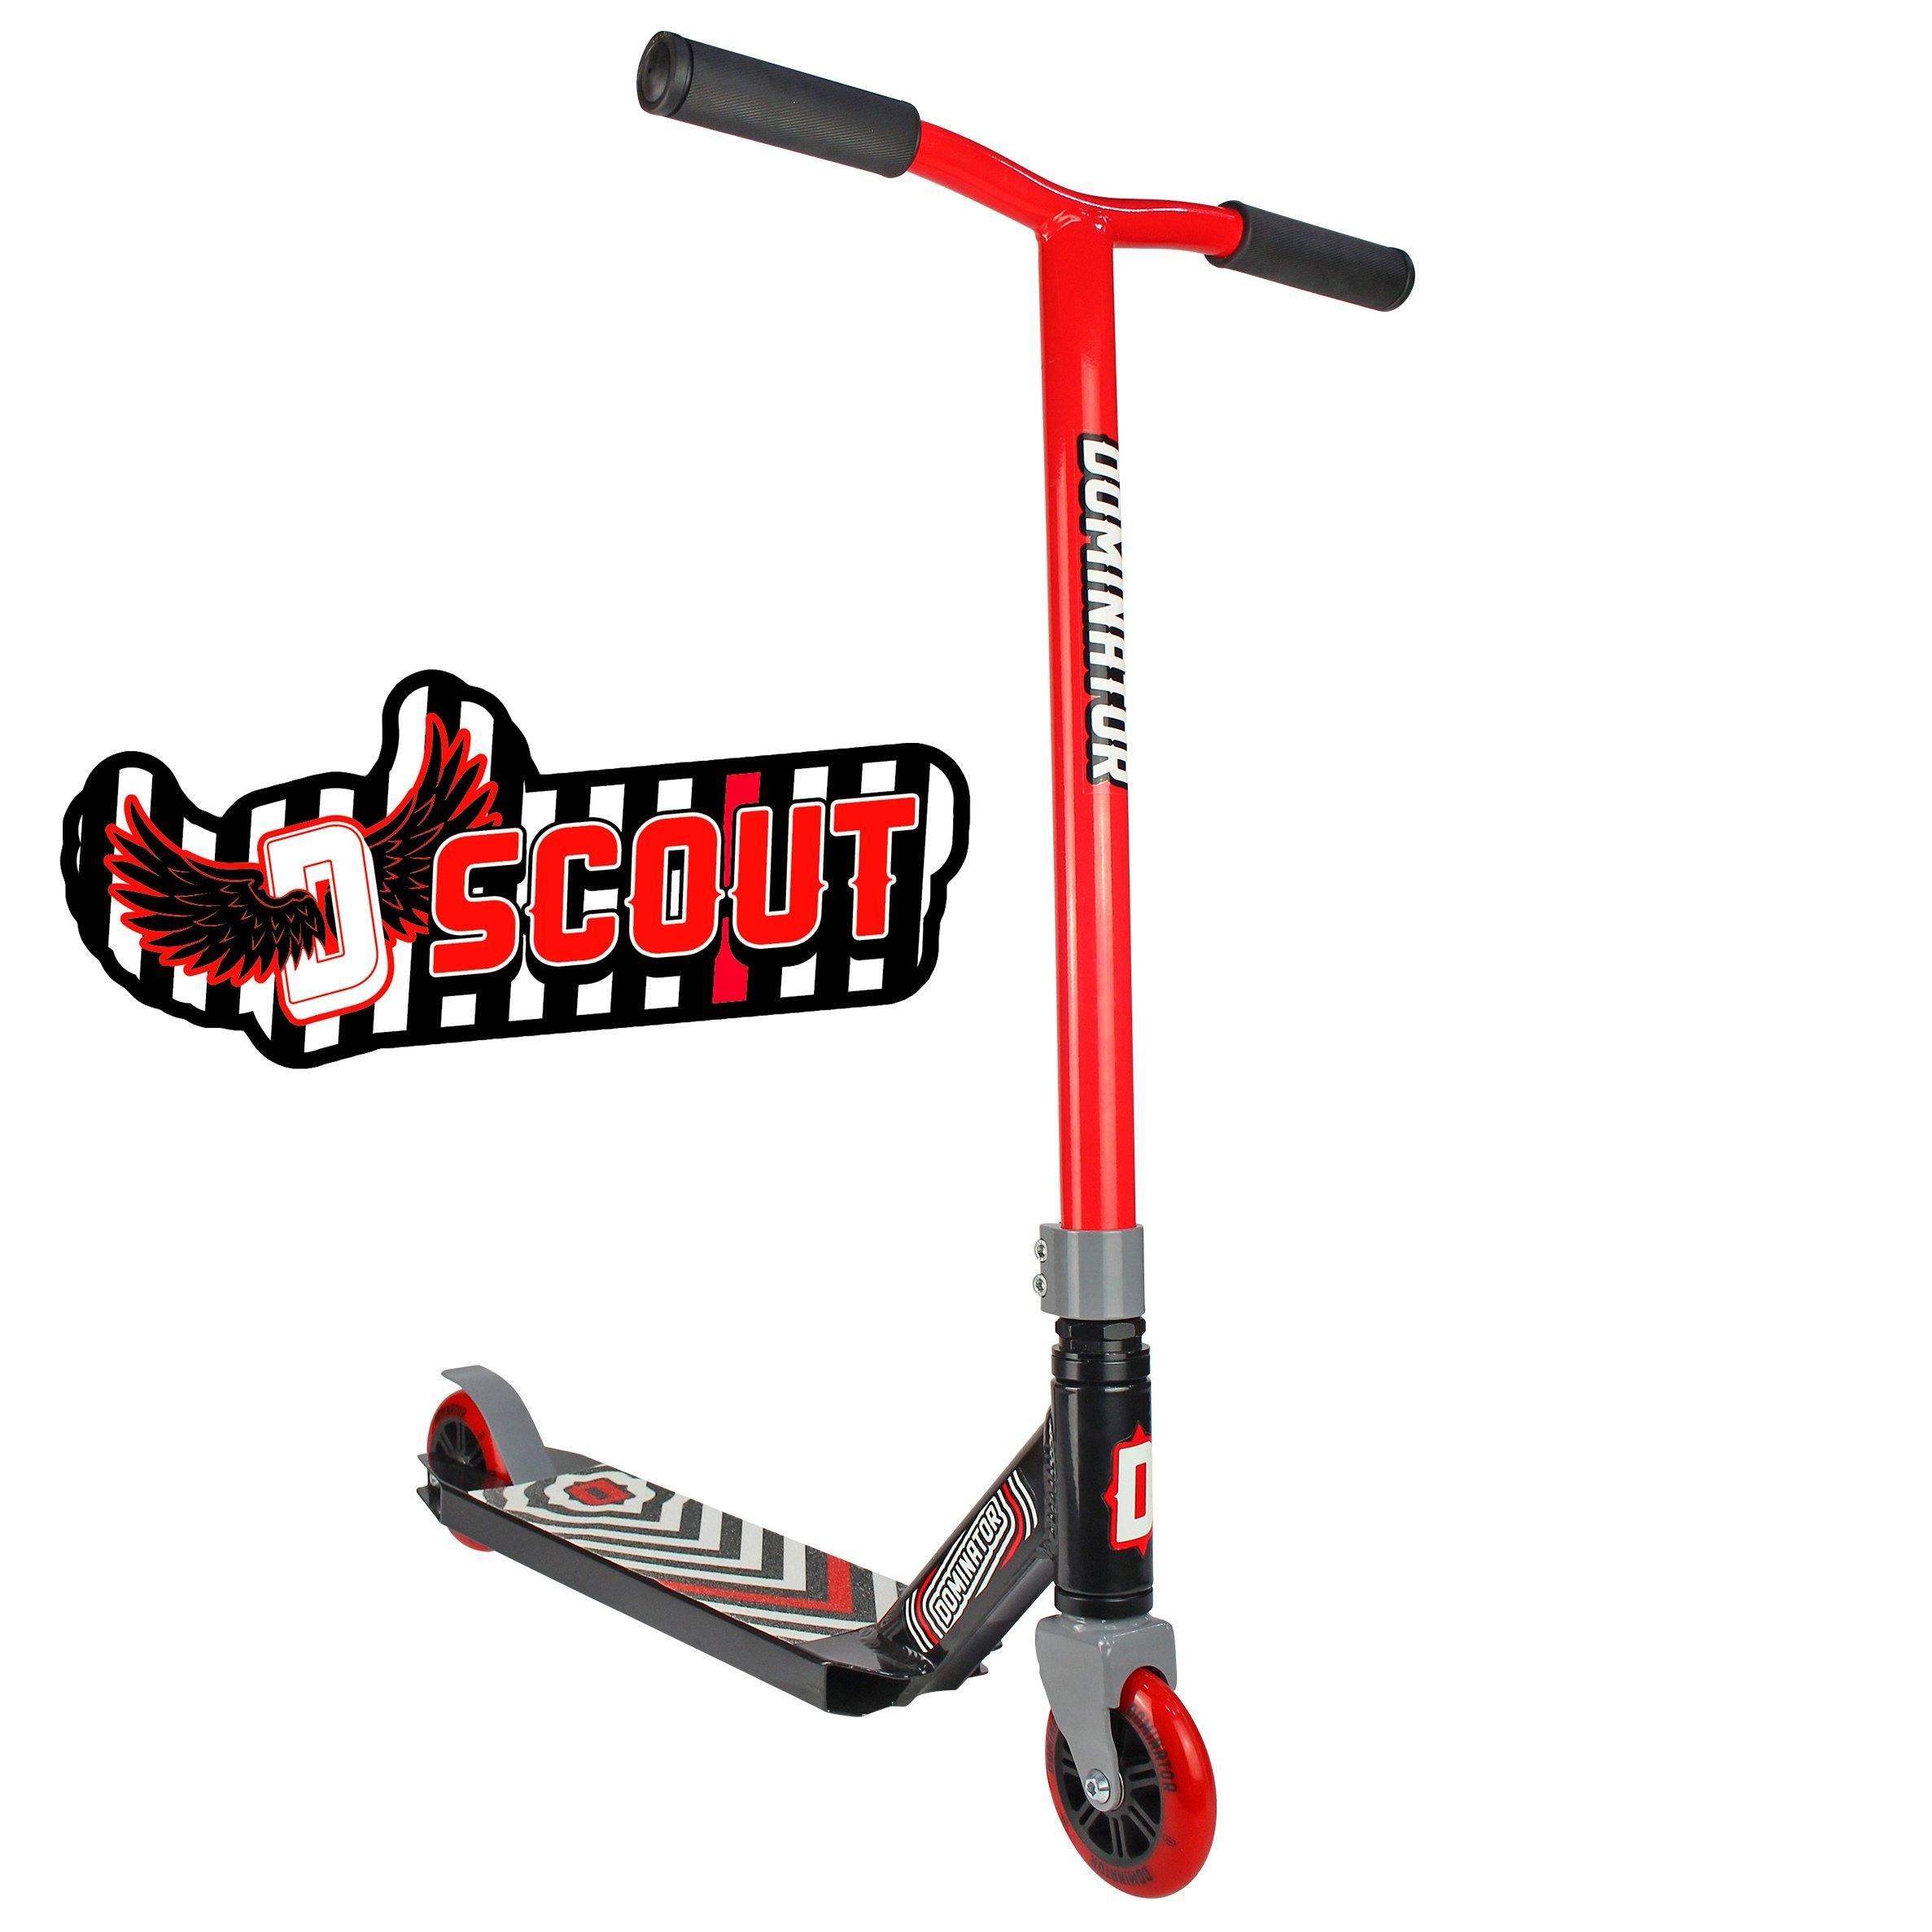 Dominator Scout Pro Scooter - Stunt Scooter - Trick Scooter (Red/Black)